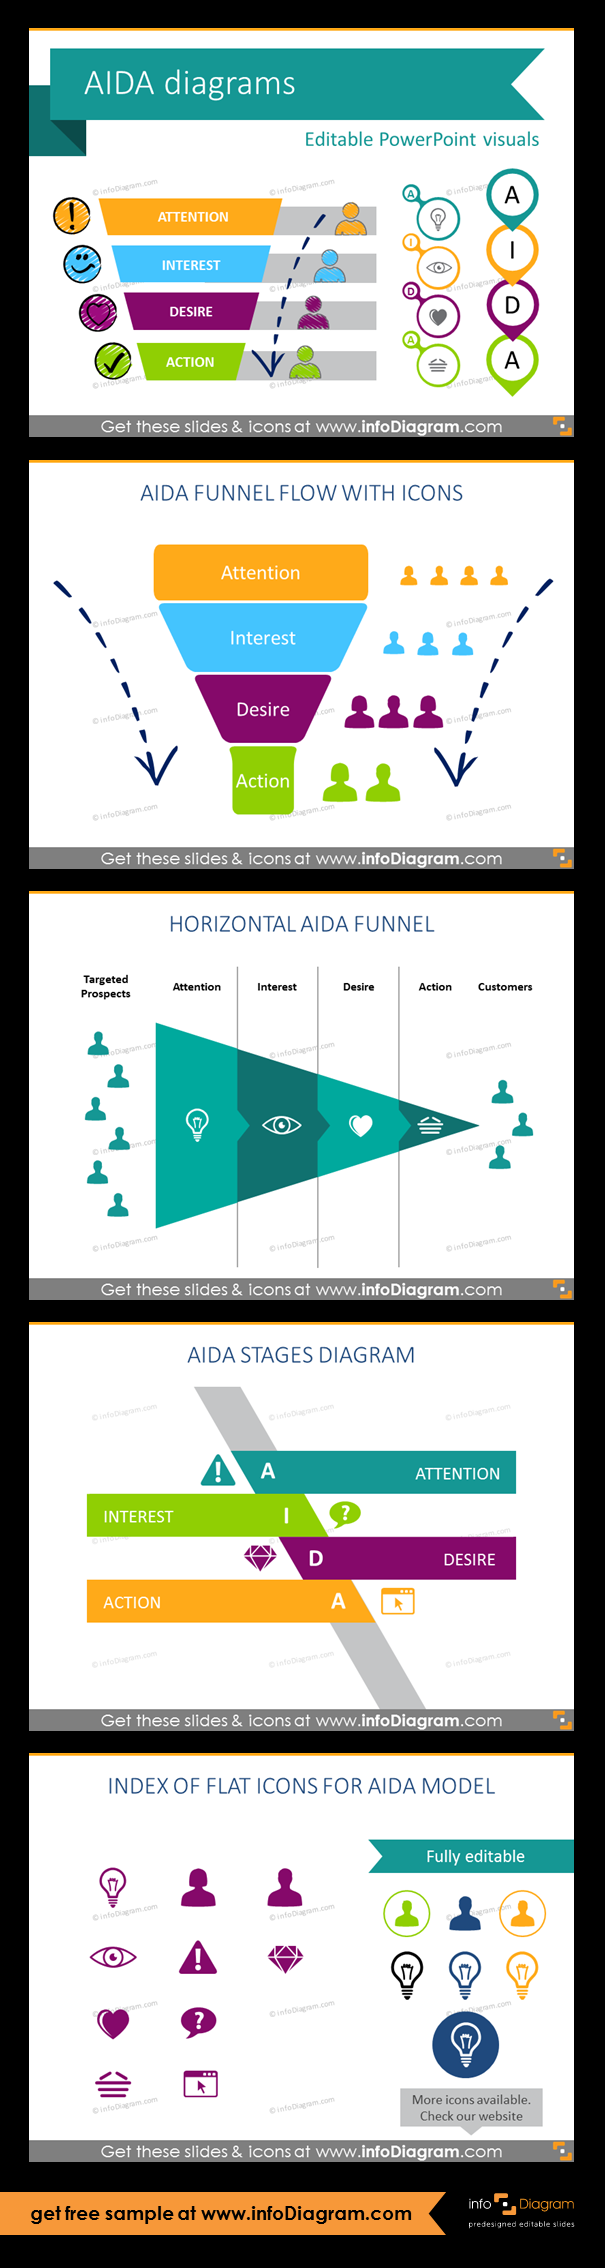 Aida marketing model diagram ppt chart icons pinterest collection aida marketing model diagrams as pre designed powerpoint slides fully editable vector shapes ccuart Image collections